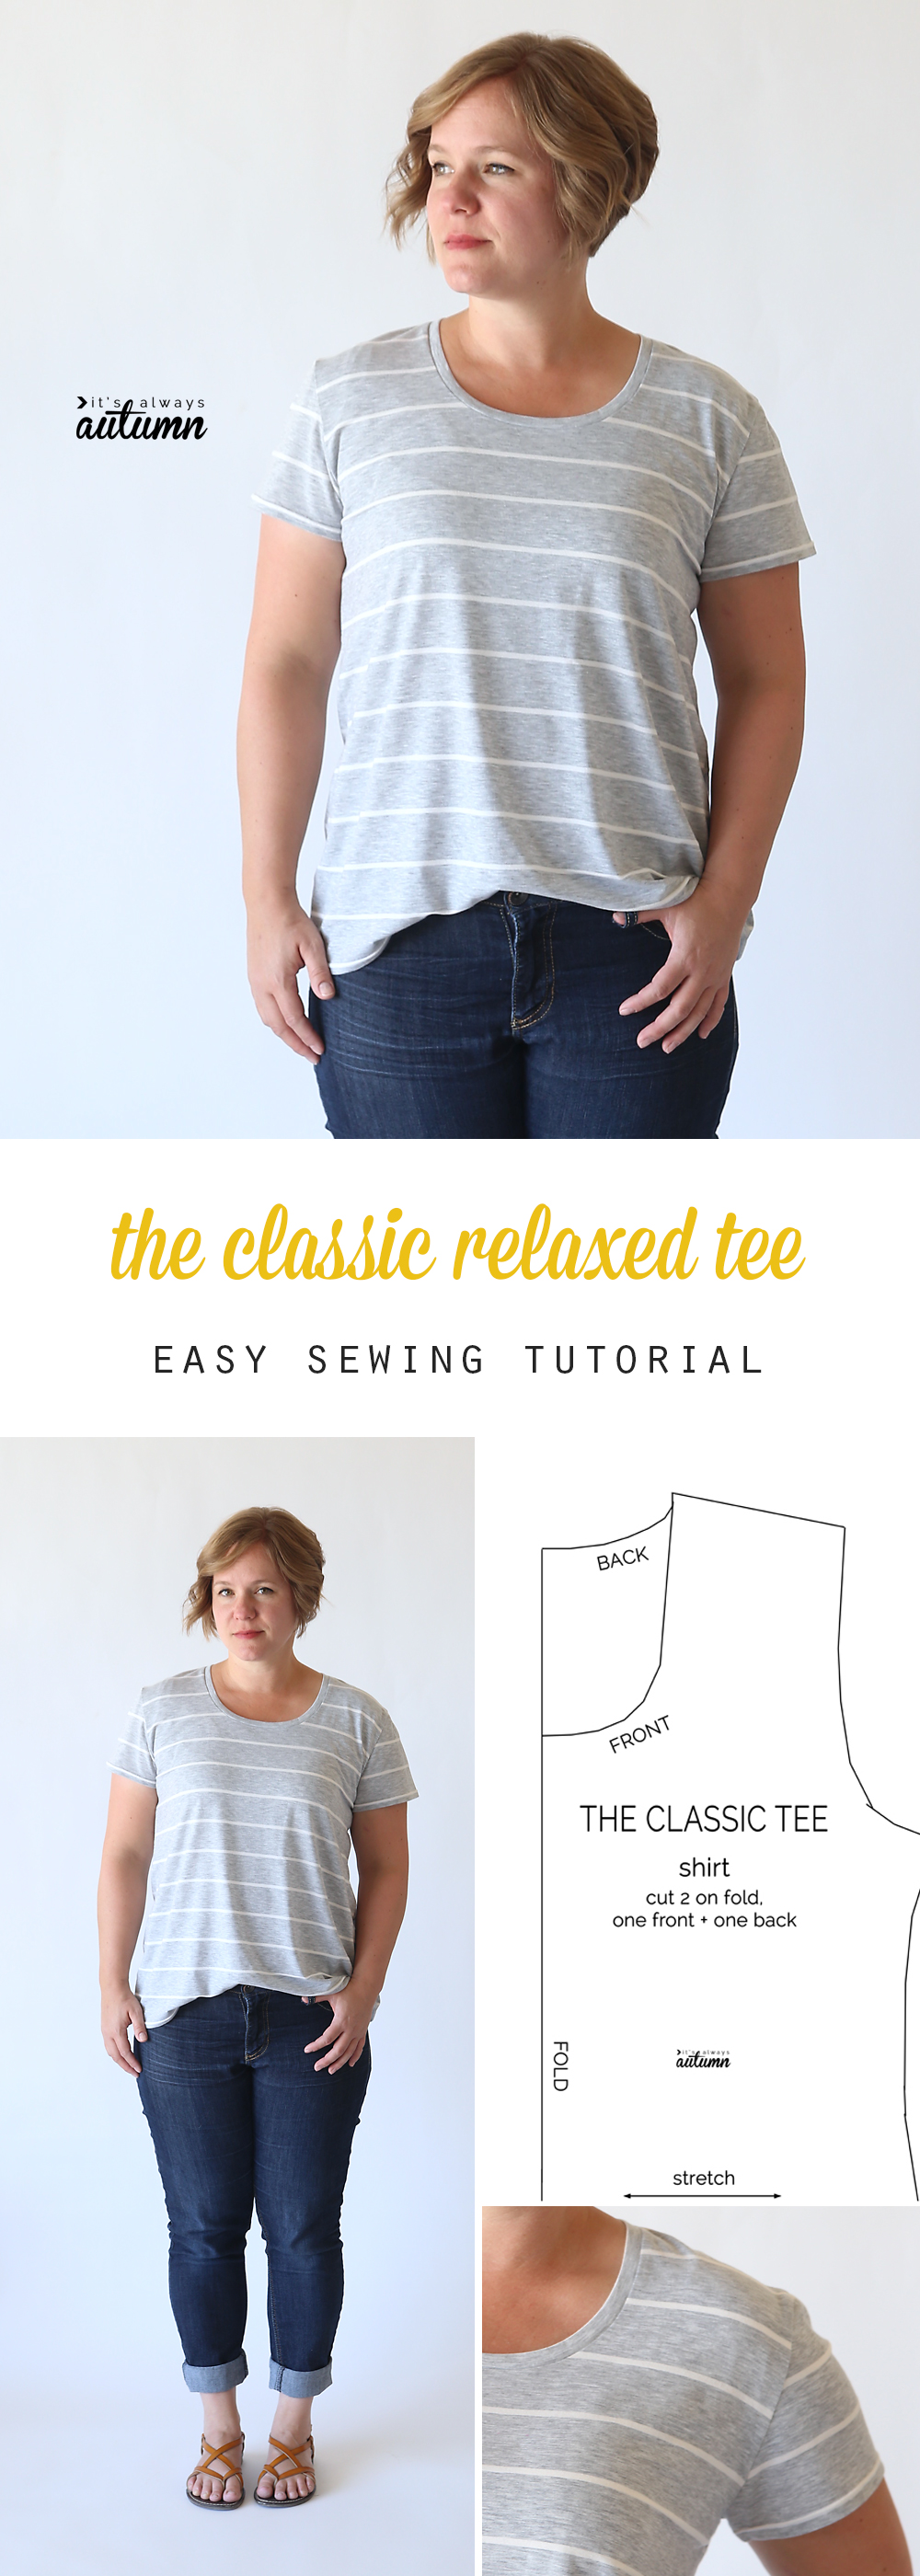 A woman wearing the classic tee in a relaxed fit; classic tee sewing pattern